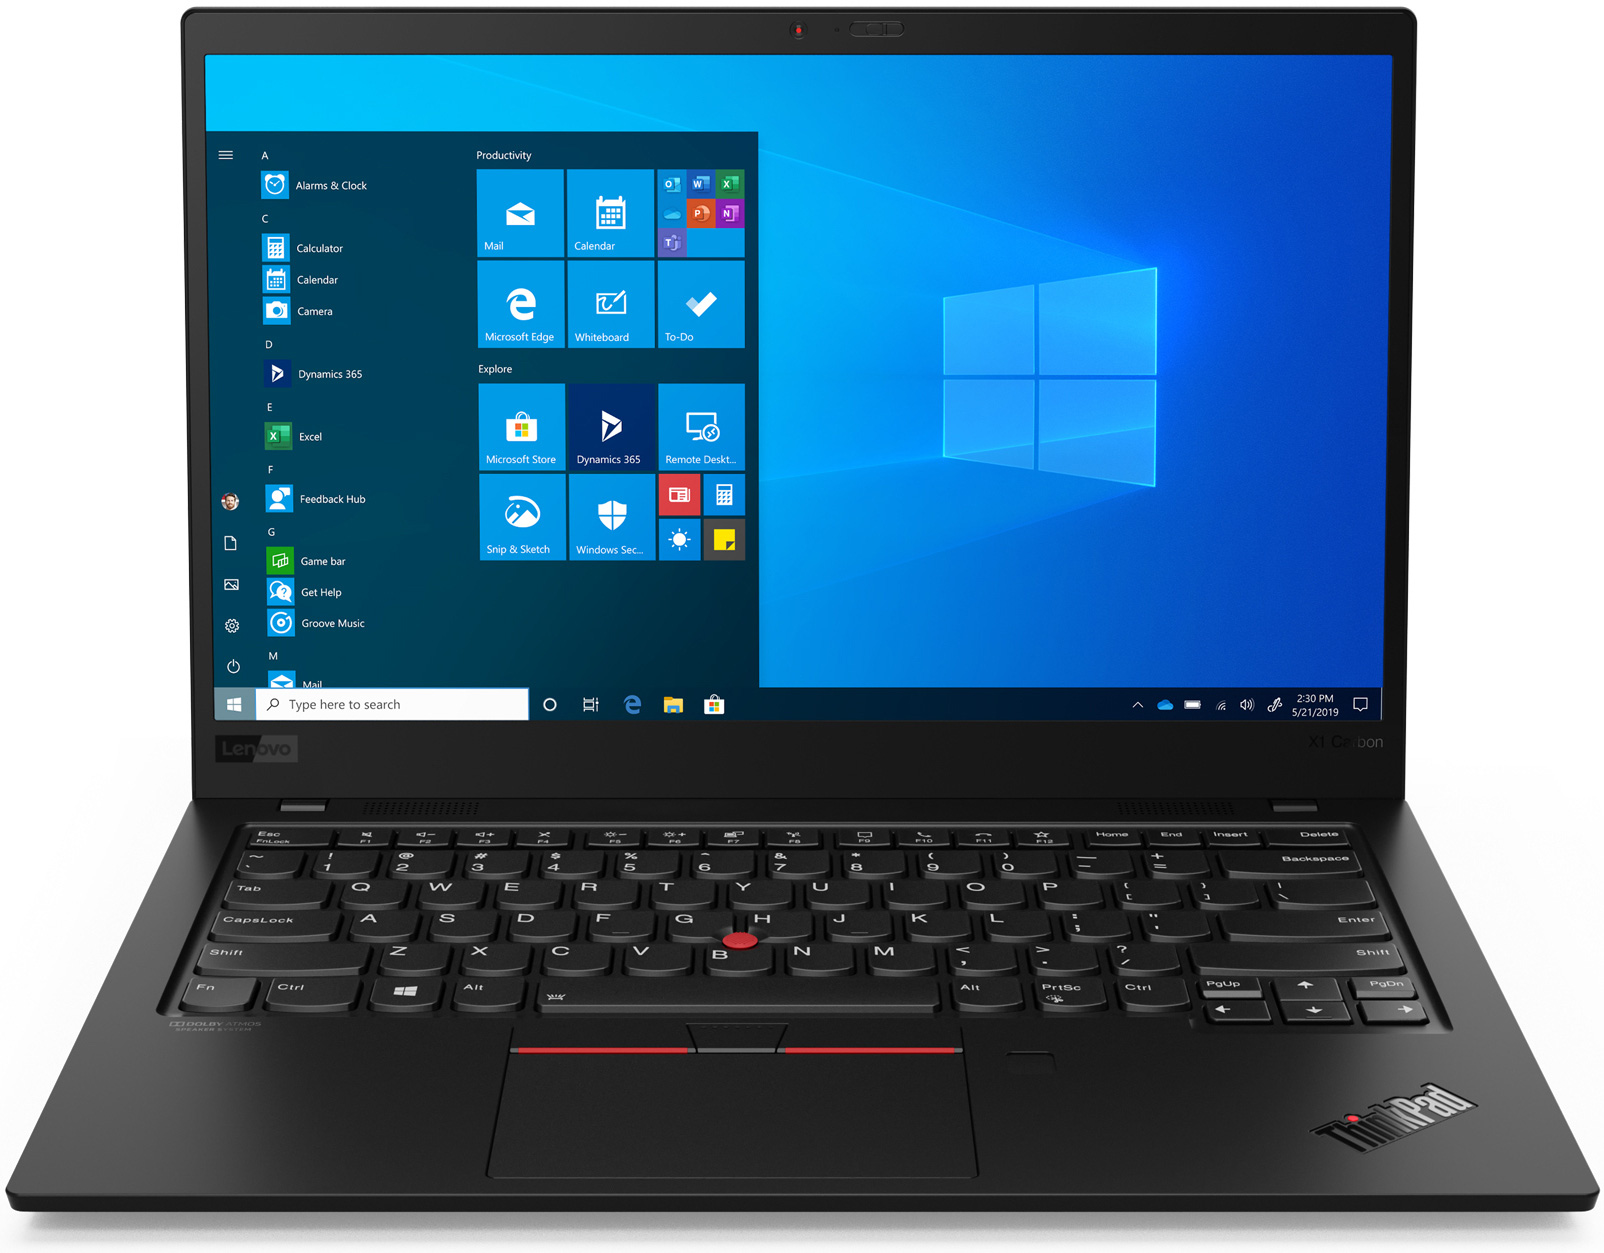 Lenovo ThinkPad X1 Carbon Gen 8 14 inch Windows 10